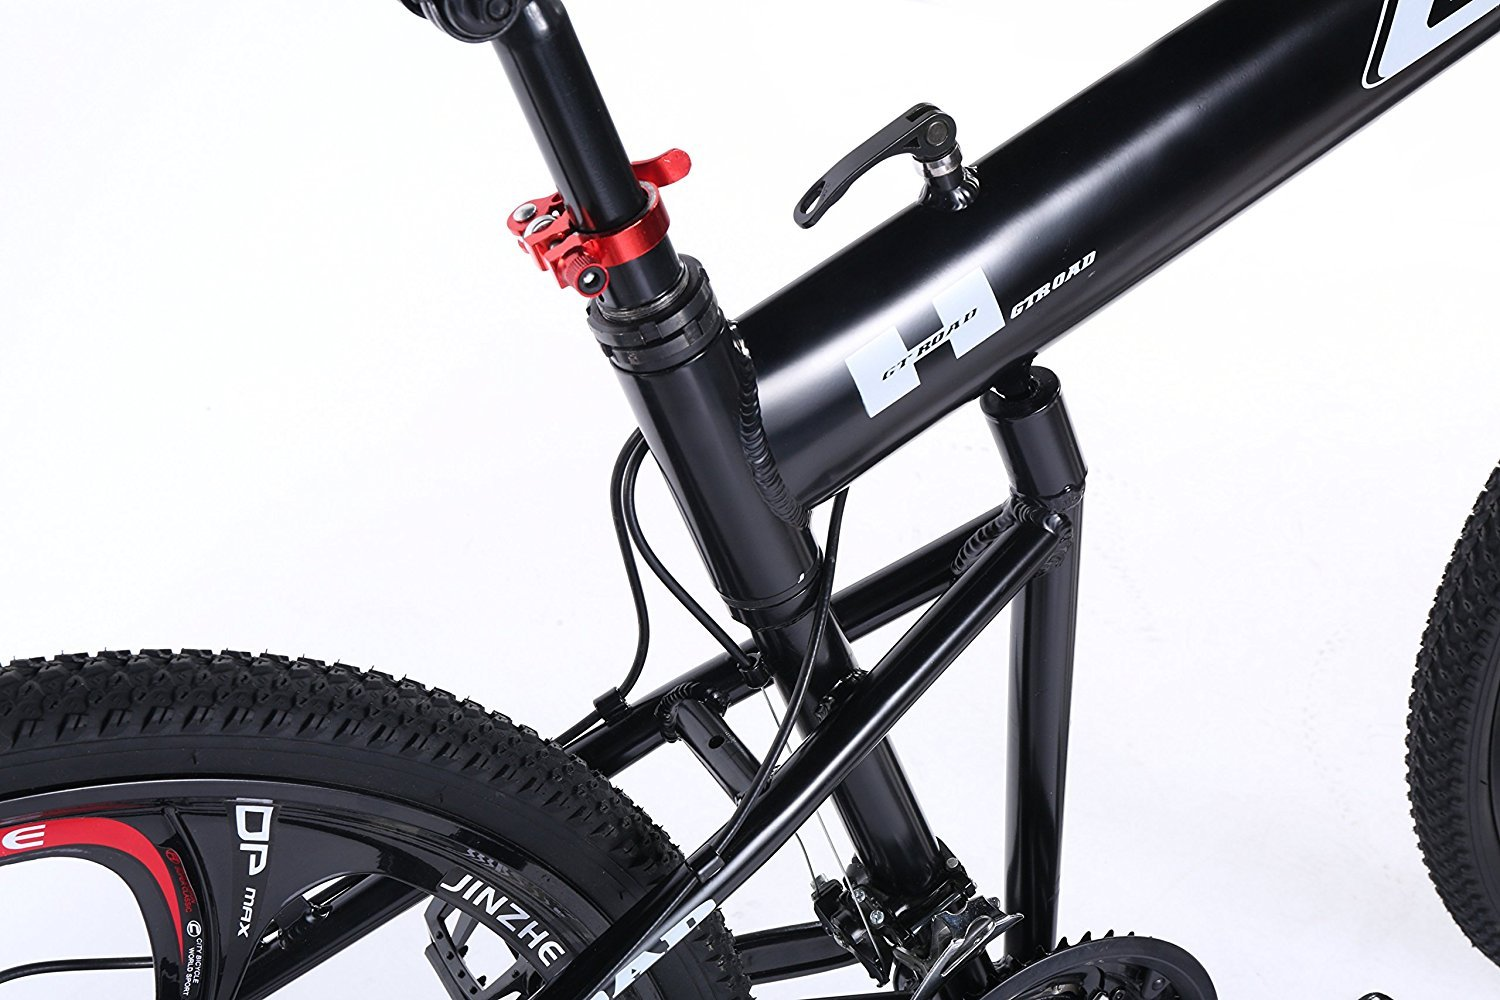 OPATER MTB Mountain Bike 26″ 24 Speed Sturdy Carbon Steel Frame Bike For Men and Women (Black) by OPATER (Image #3)